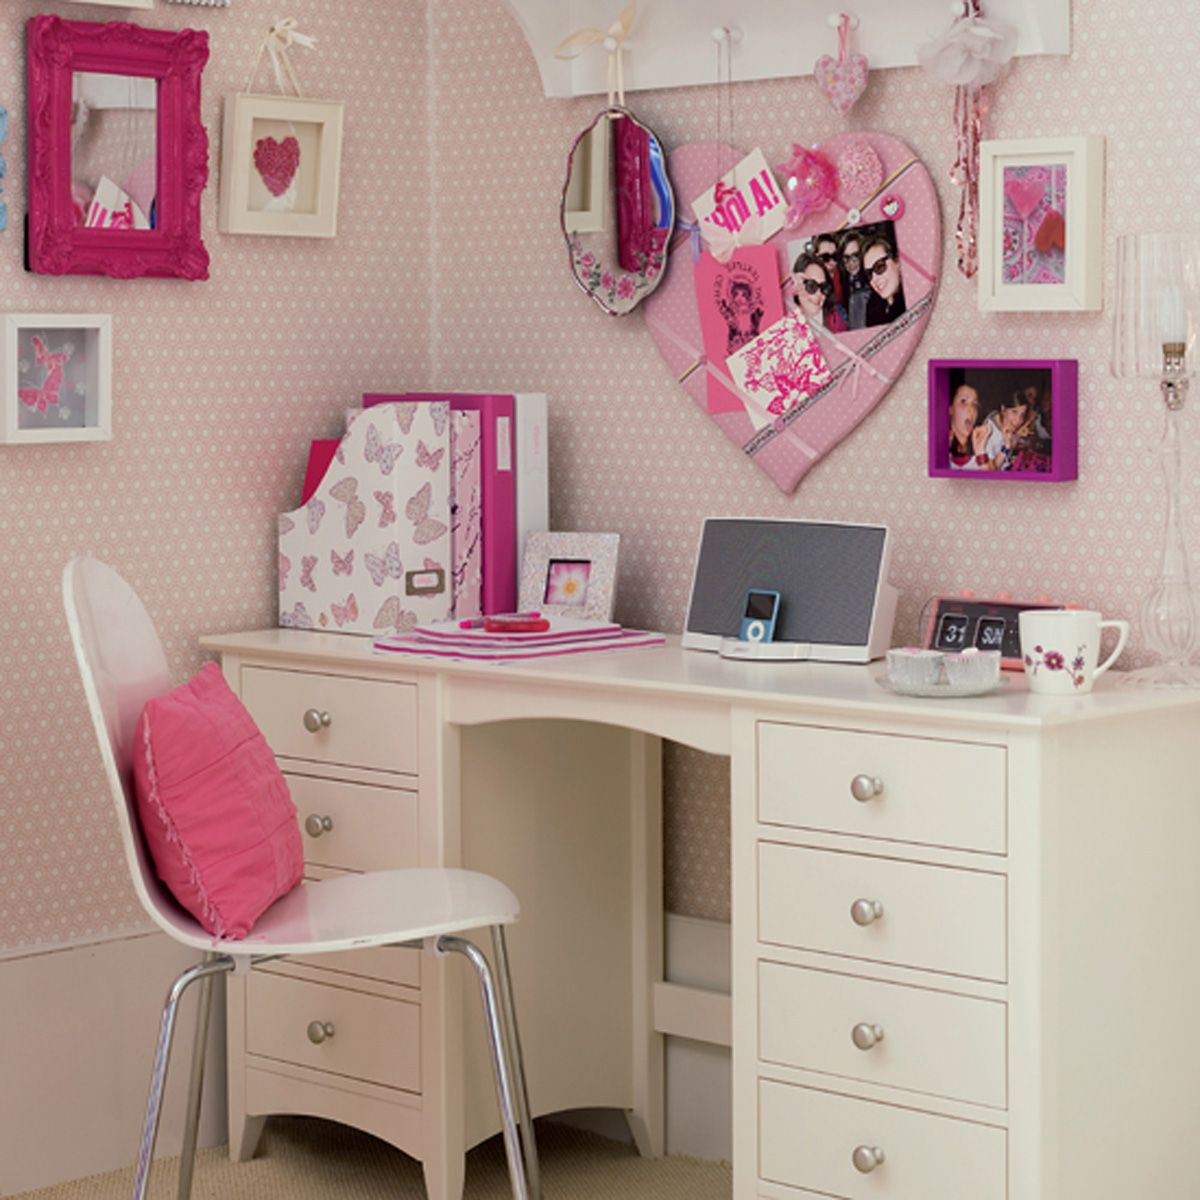 Bedroom Nice Home Furniture Design Of White Desk Designed With Drawers Plus  White Chair And Pink Cushion Also Pink Wall Decoration Theme : Teen Bedroom  ...